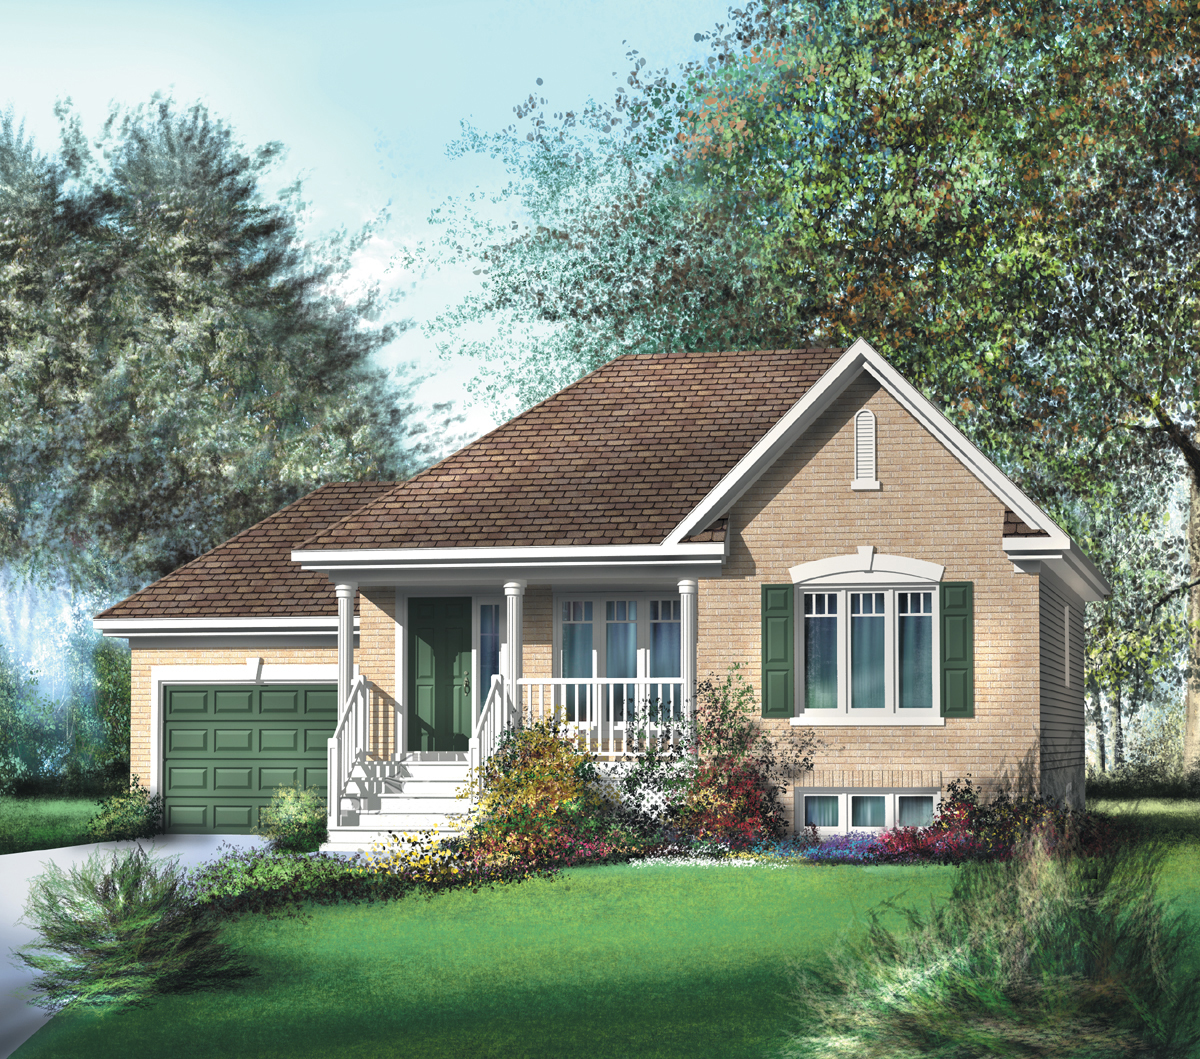 Traditional bungalow house plan 80362pm 1st floor - Bungalows de madera prefabricadas precios ...